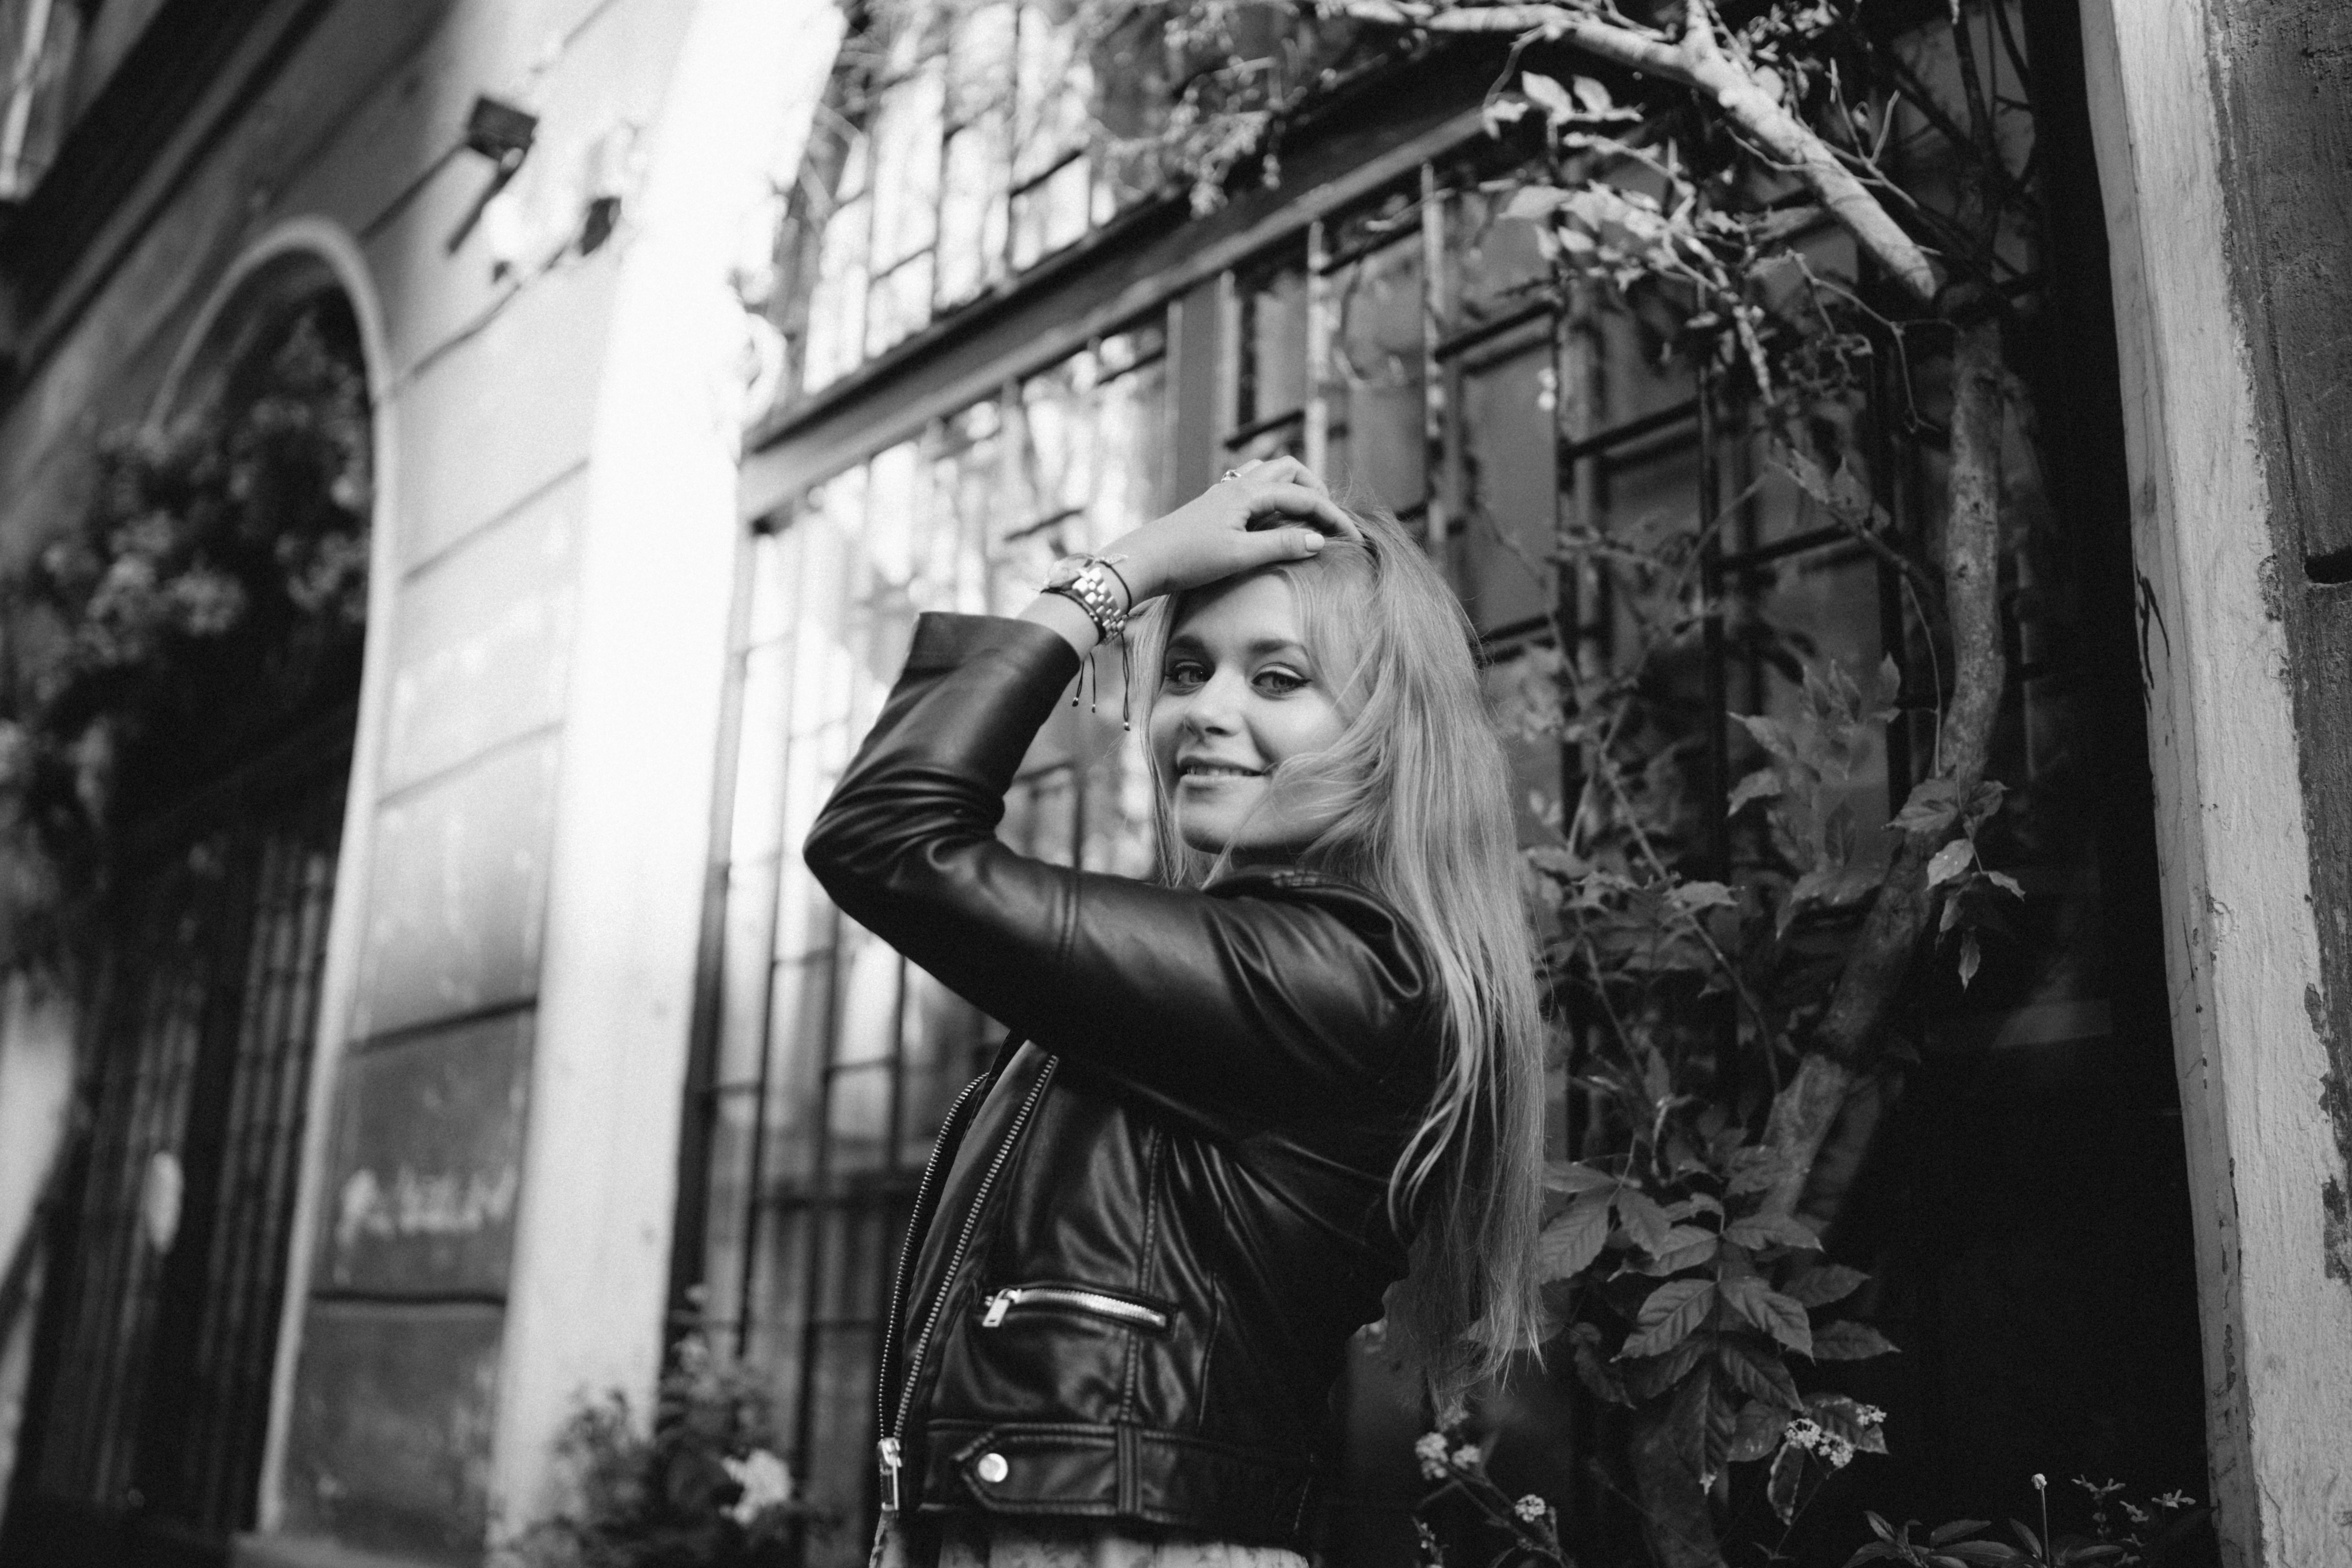 grayscale photo of woman wearing leather jacket